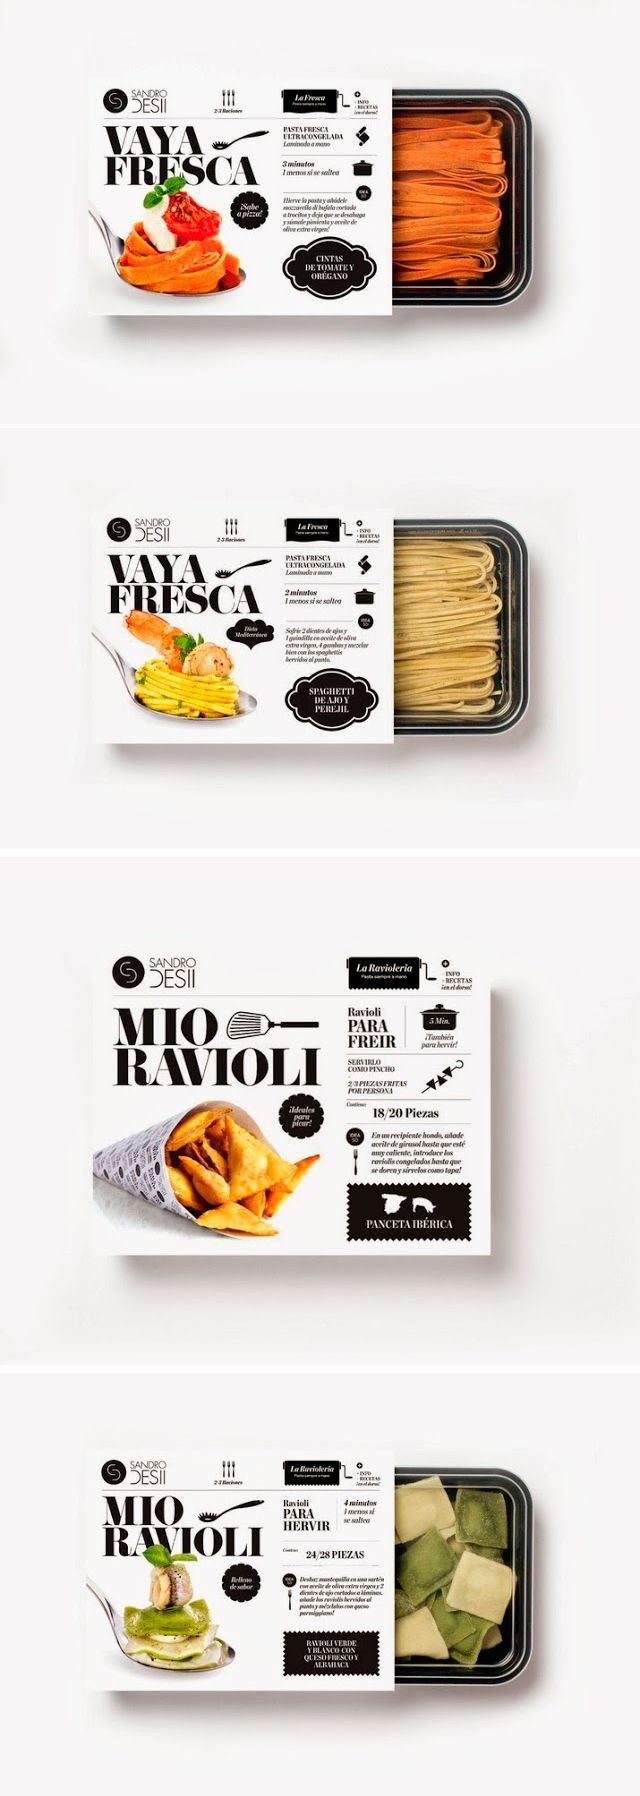 Sandro Desii | Fresh pasta (Packaging) by Lo Siento Studio, Barcelona